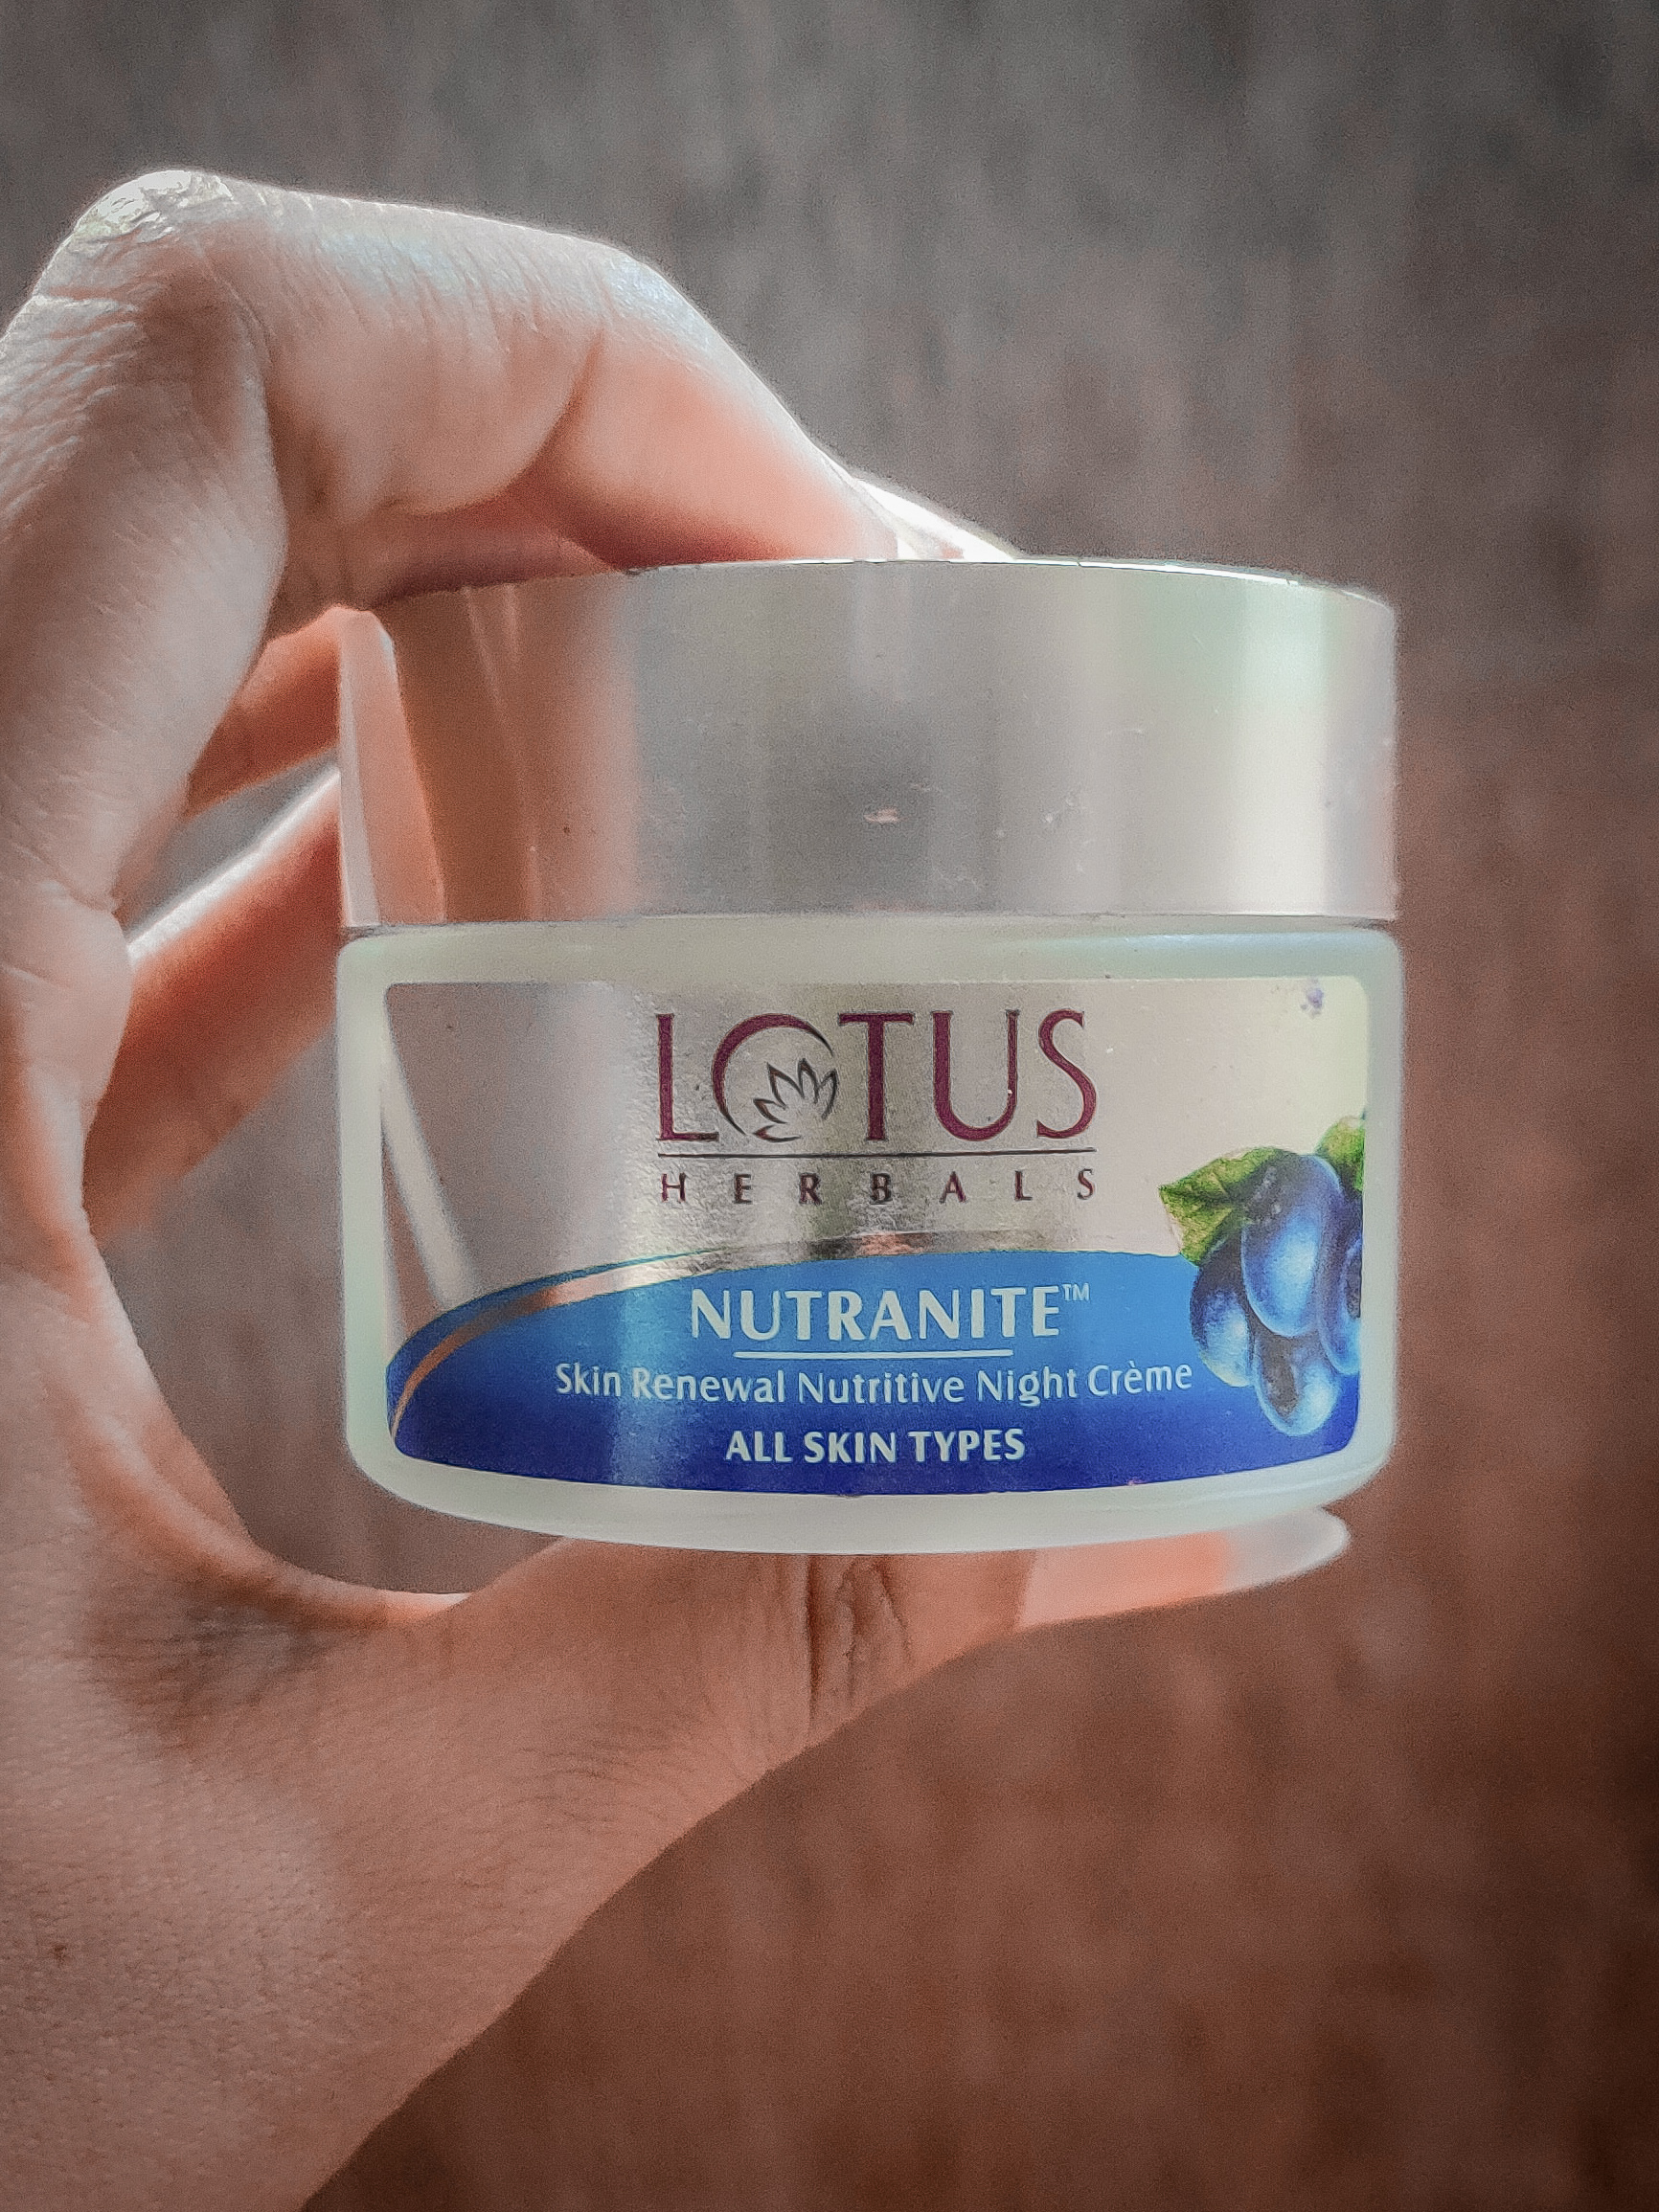 Lotus Herbals Nutranite Skin Renewal Nutritive Night Cream -Most effective night cream-By shivangigosavi